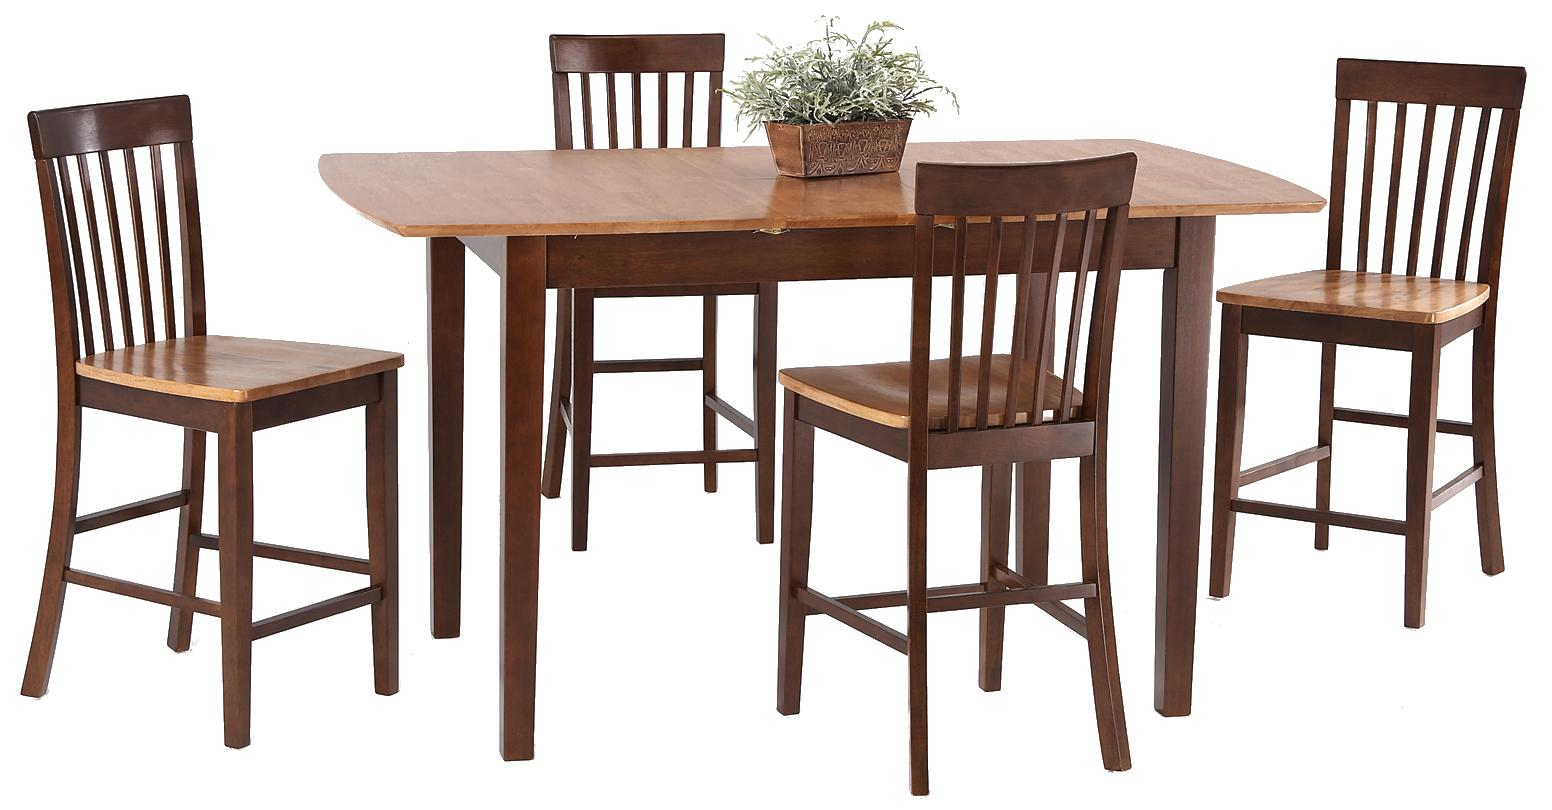 5-Piece Butterfly Leaf Pub Table Set